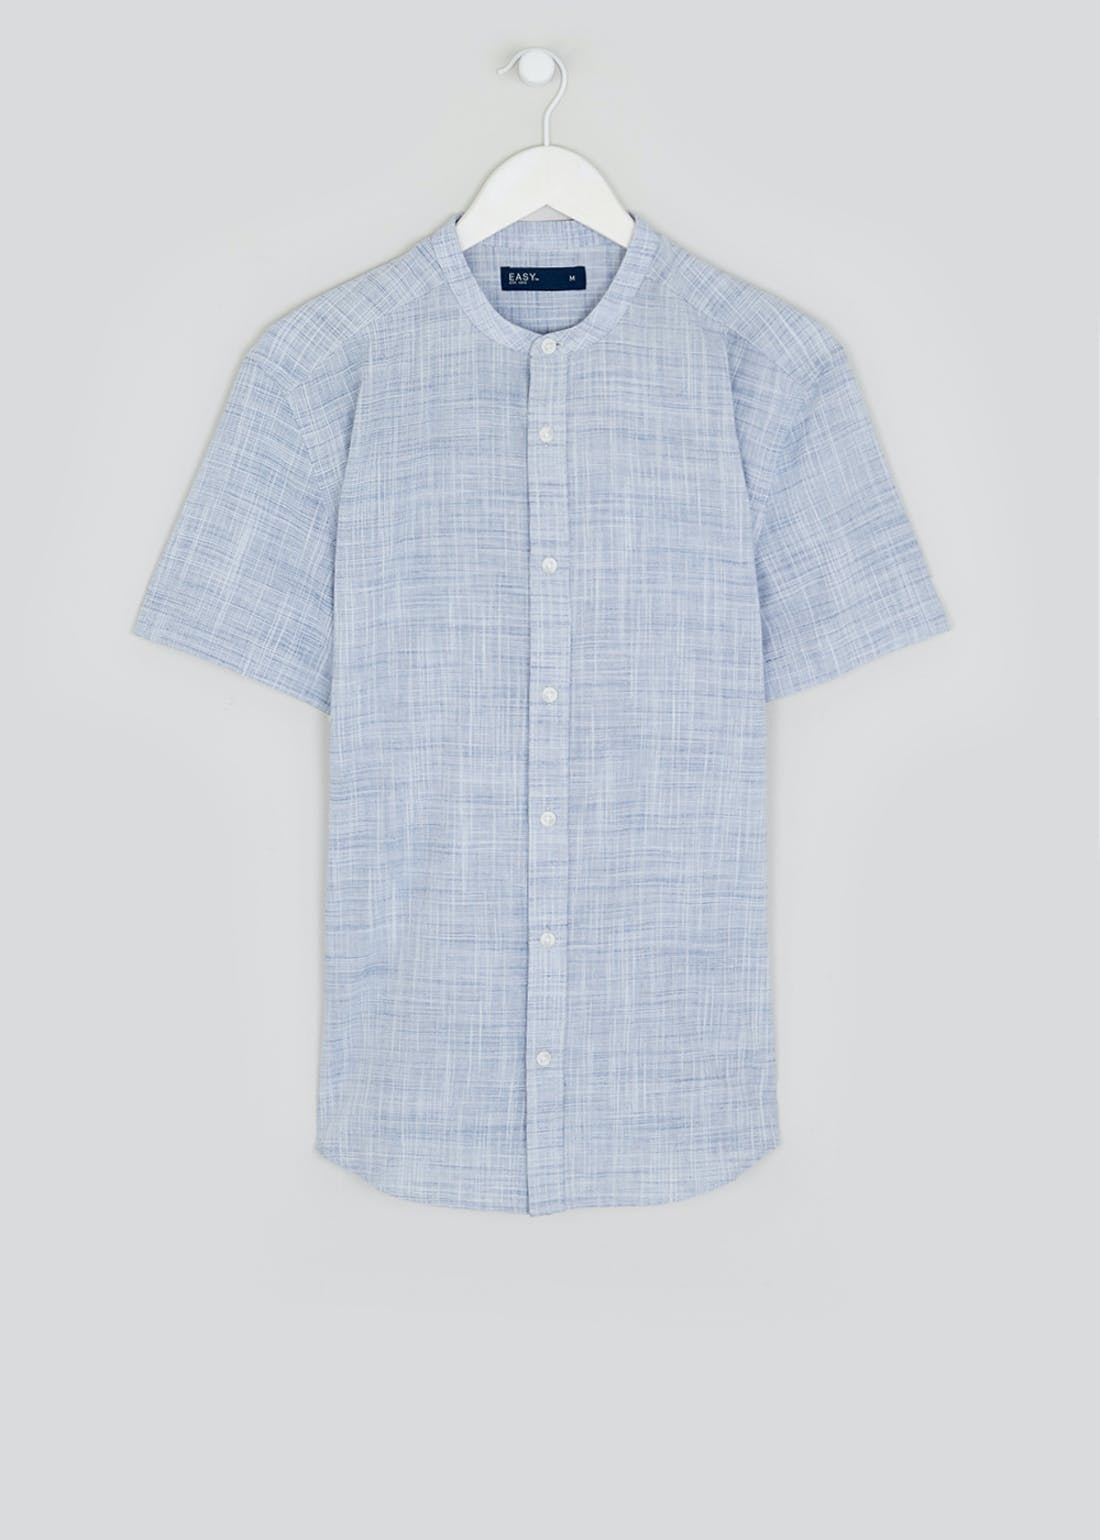 Short Sleeve Grandad Collar Shirt